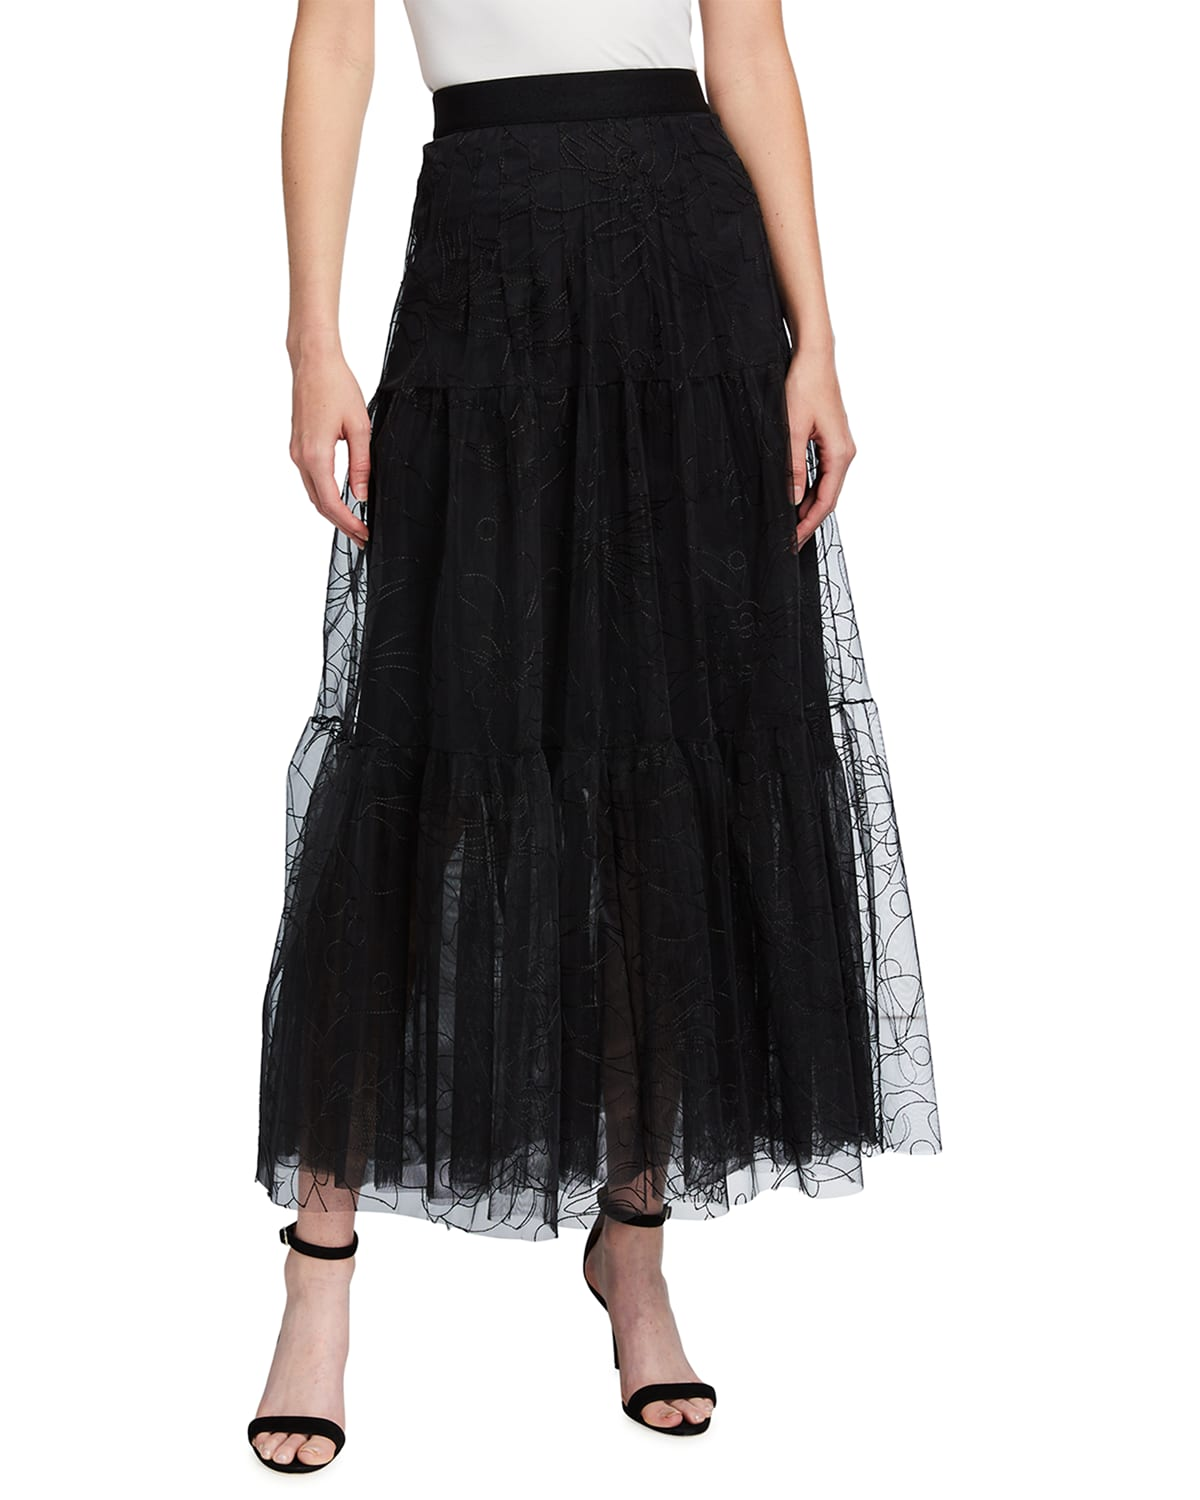 Embroidered Floral Tulle Woven Midi Skirt